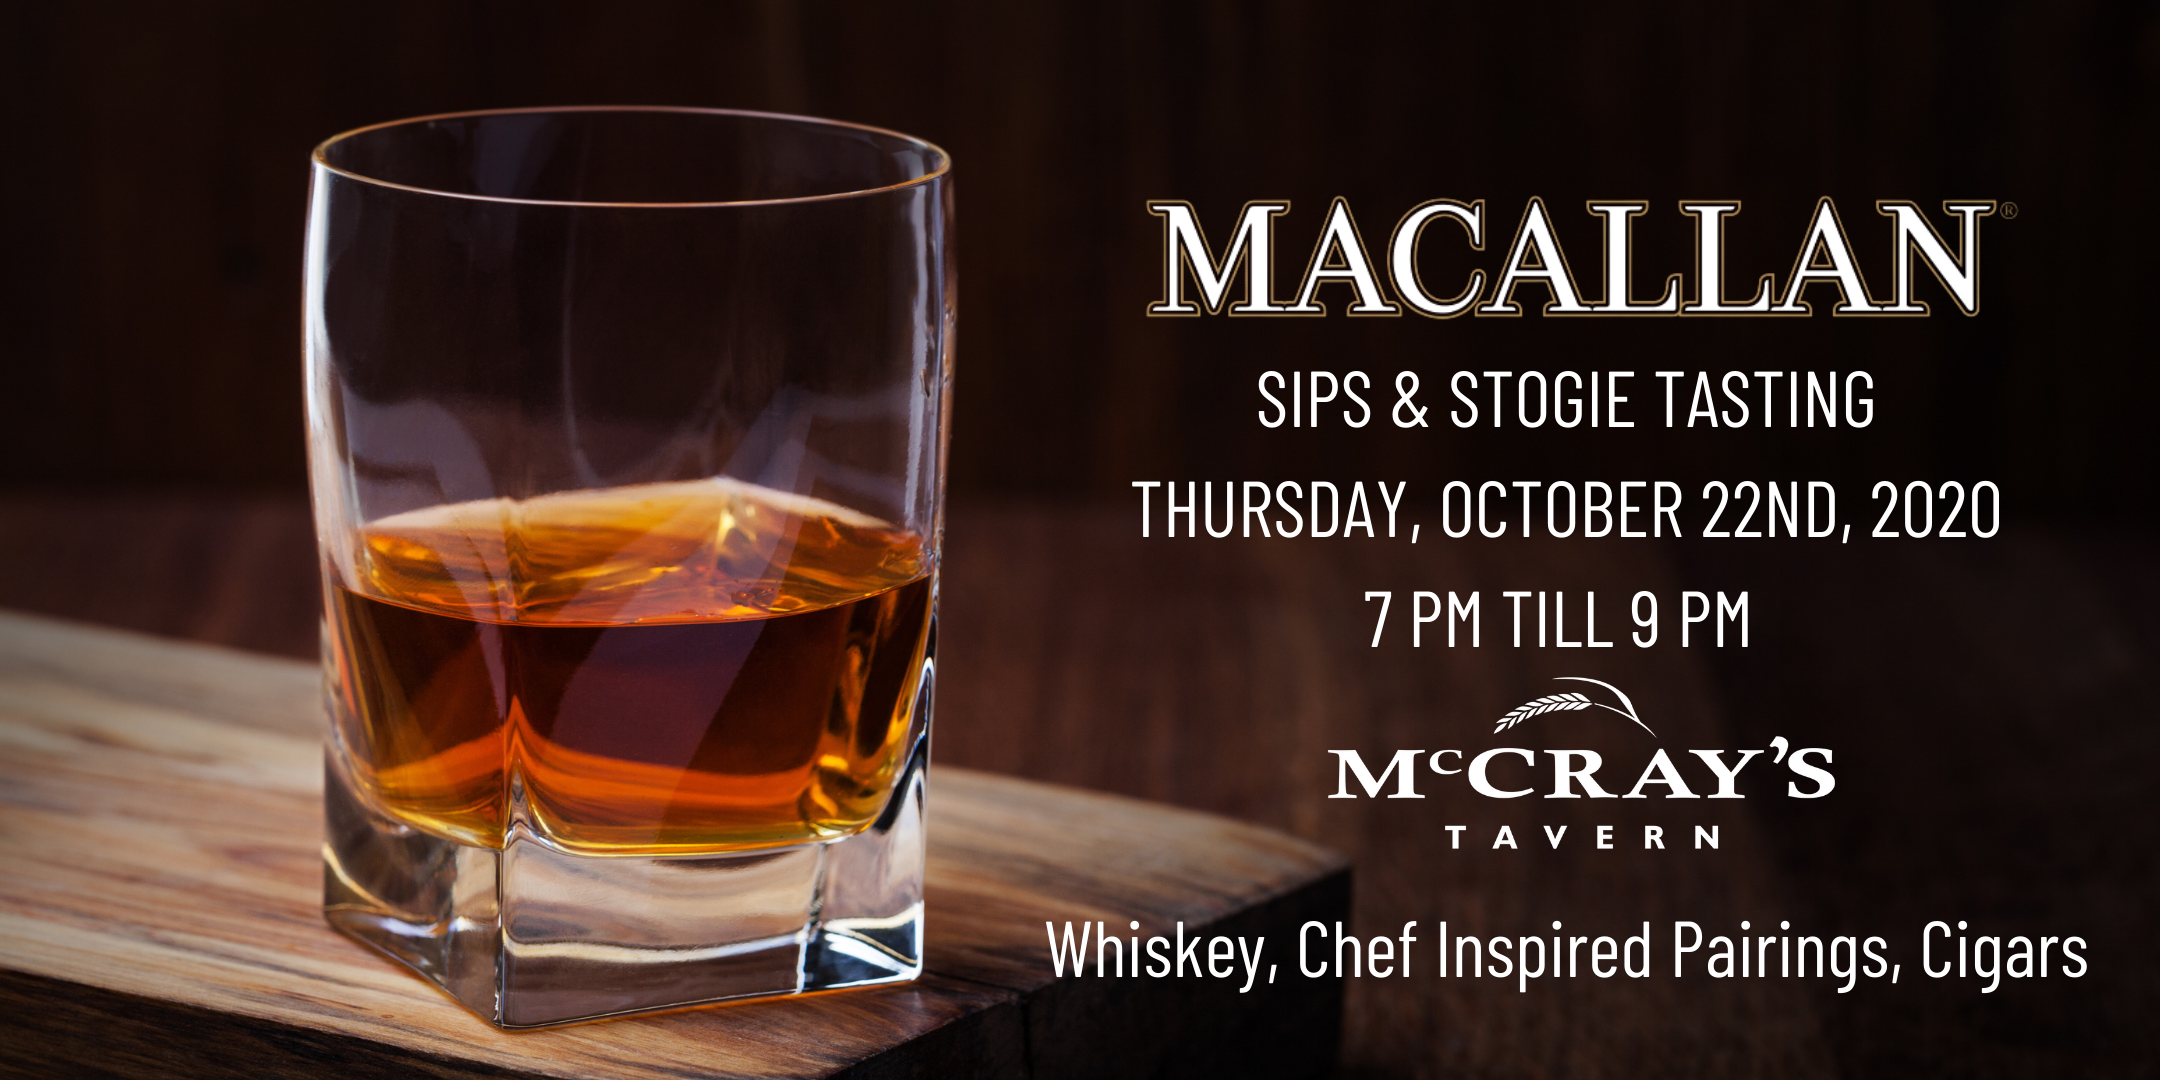 Sips & Stogies | The Macallan Scotch Whisky Tasting at East Cobb